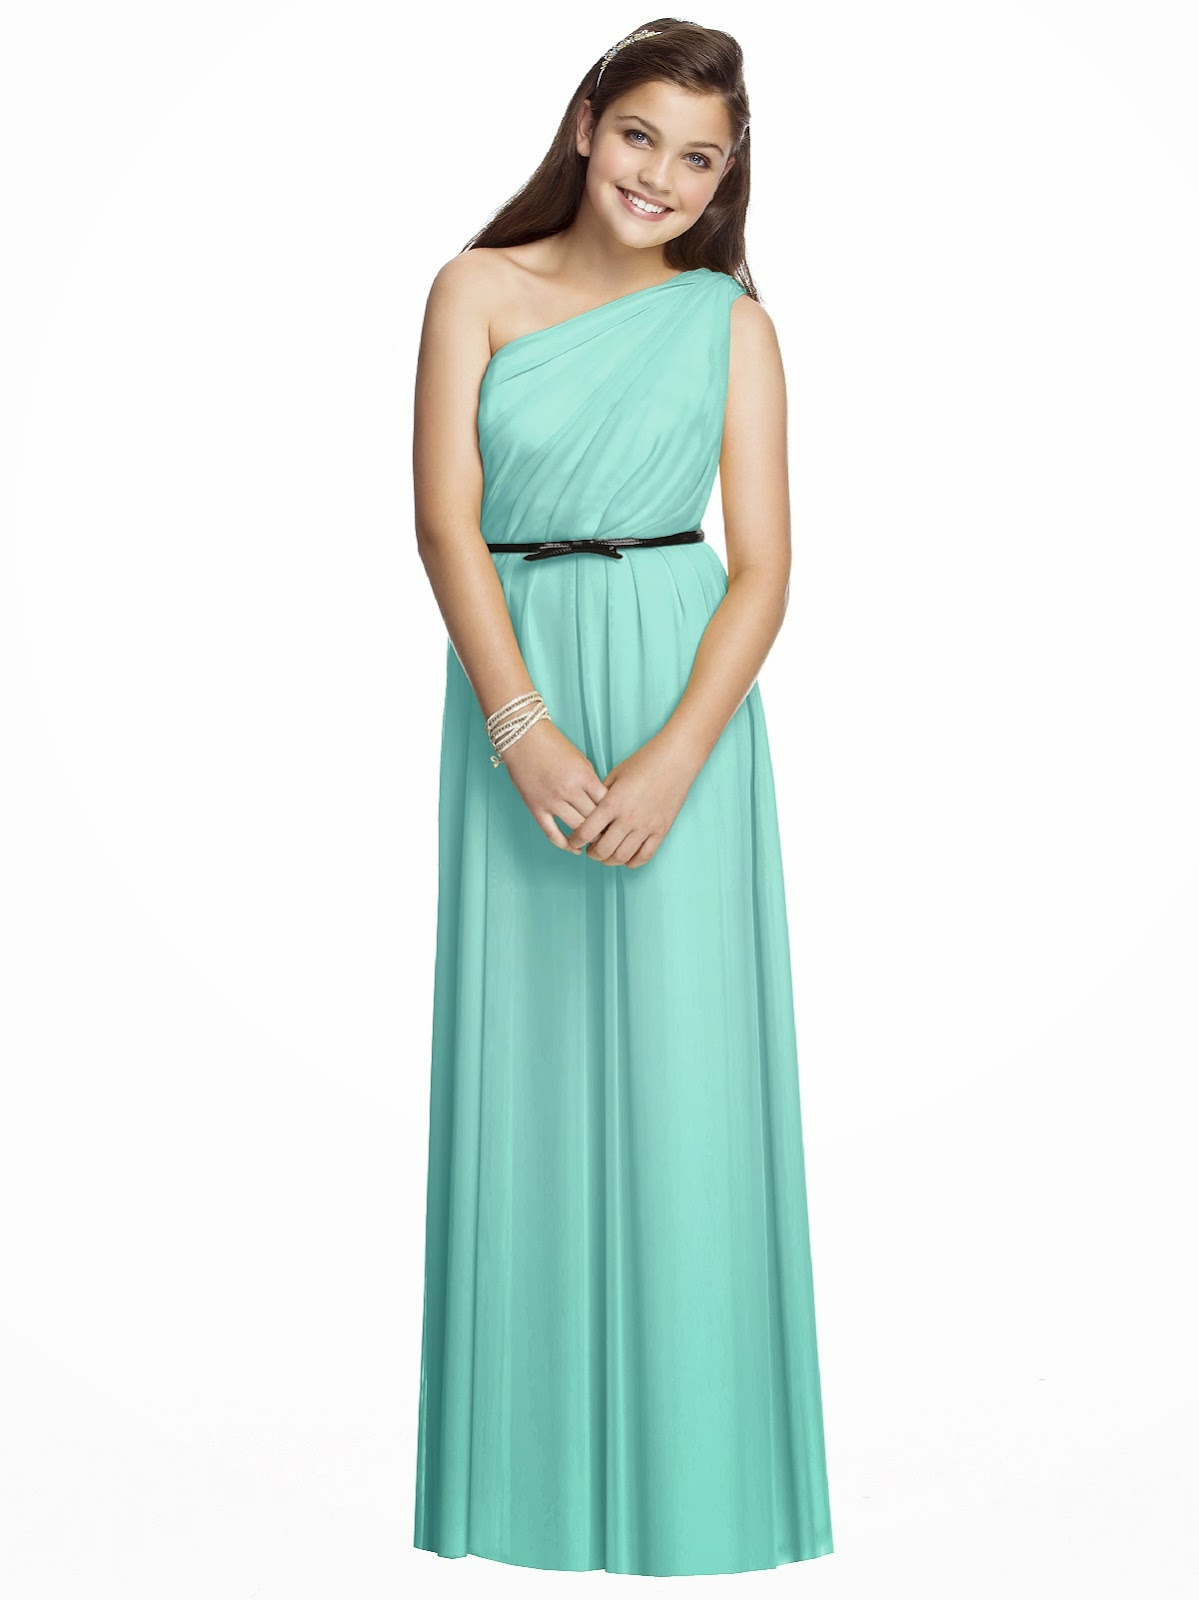 dress at jcpenney jcpenney wedding dresses outlet Collection Jcpenney Semi Formal Dresses Pictures The Fashions Of Collection Jcpenney Semi Formal Dresses Pictures The Fashions Of